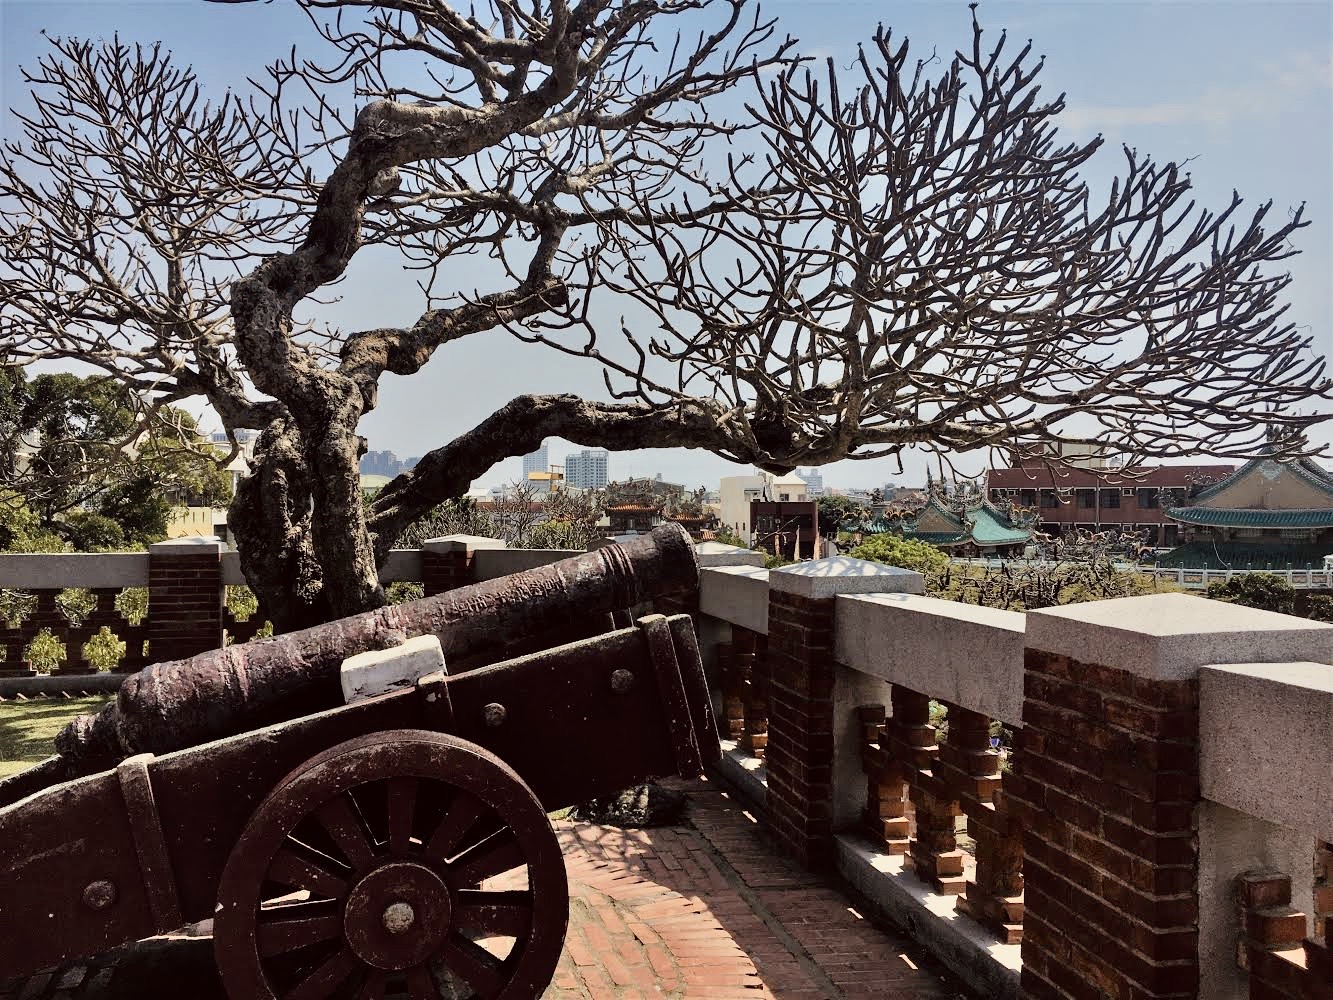 An old canon symbolizing the significance of Anping Old Fort in Tainan's history and culture